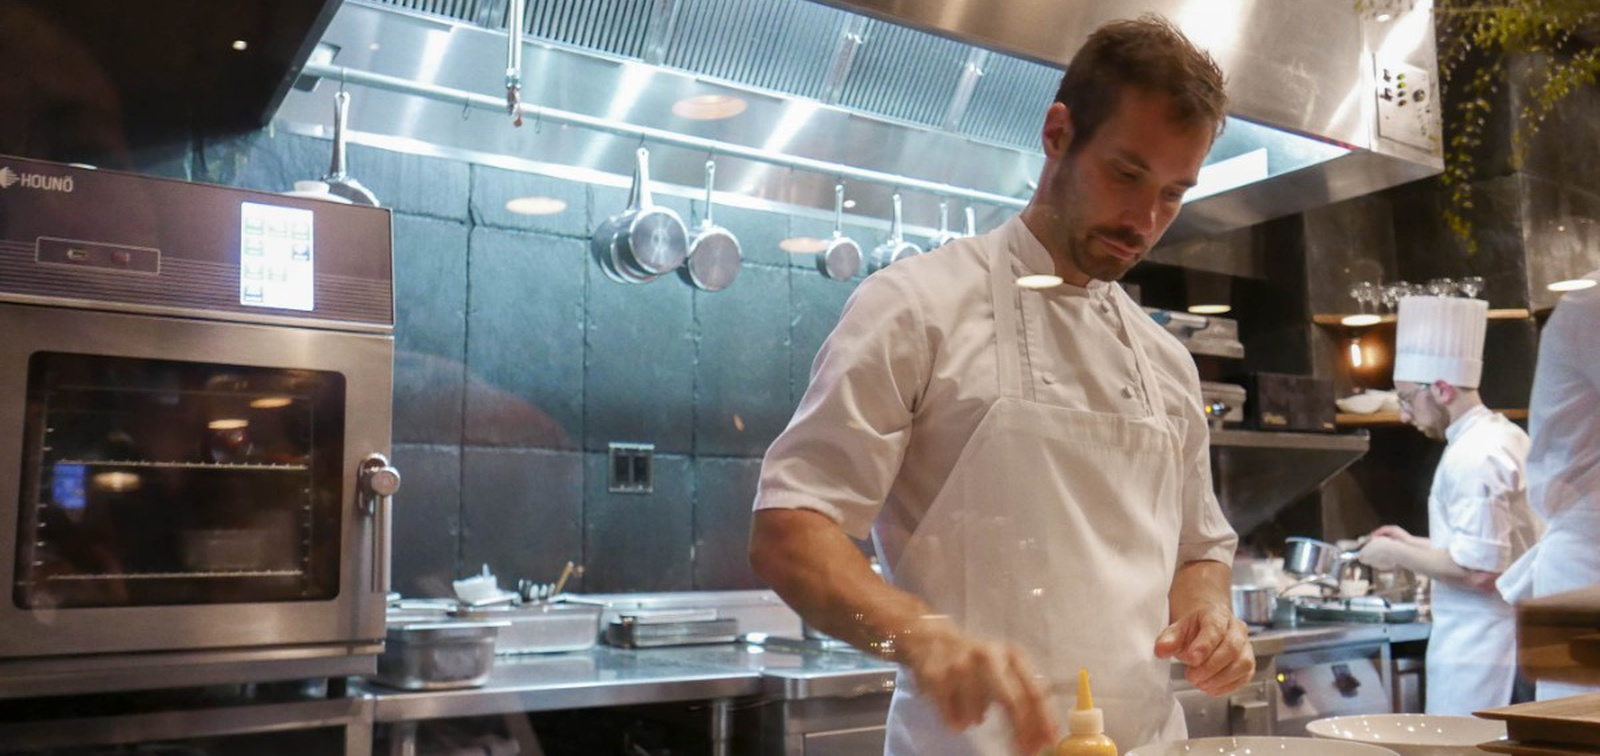 Will ghost kitchens define the restaurant industry's future?